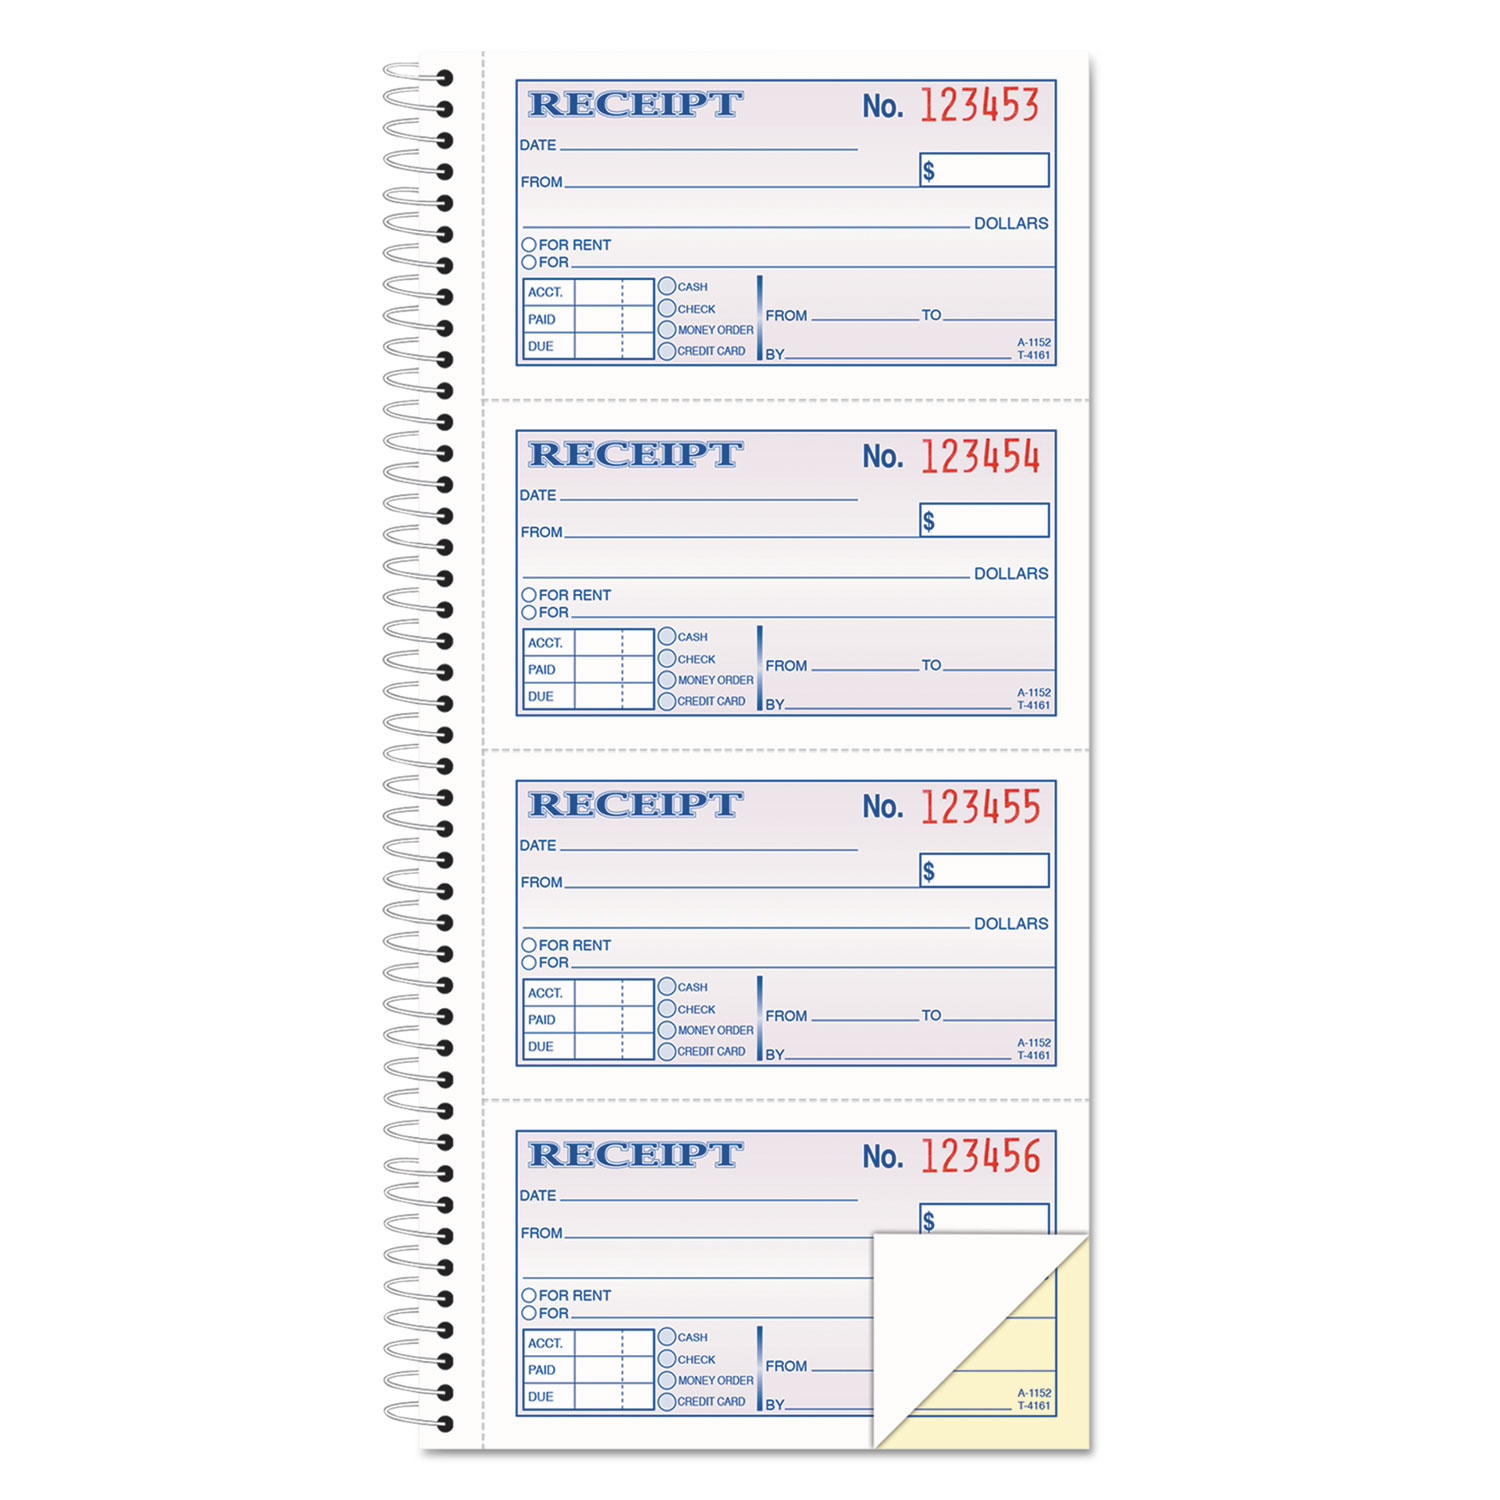 doc house rent slips sample house rent receipt template house rent slips house rent receipt format house rent receipt house rent slips